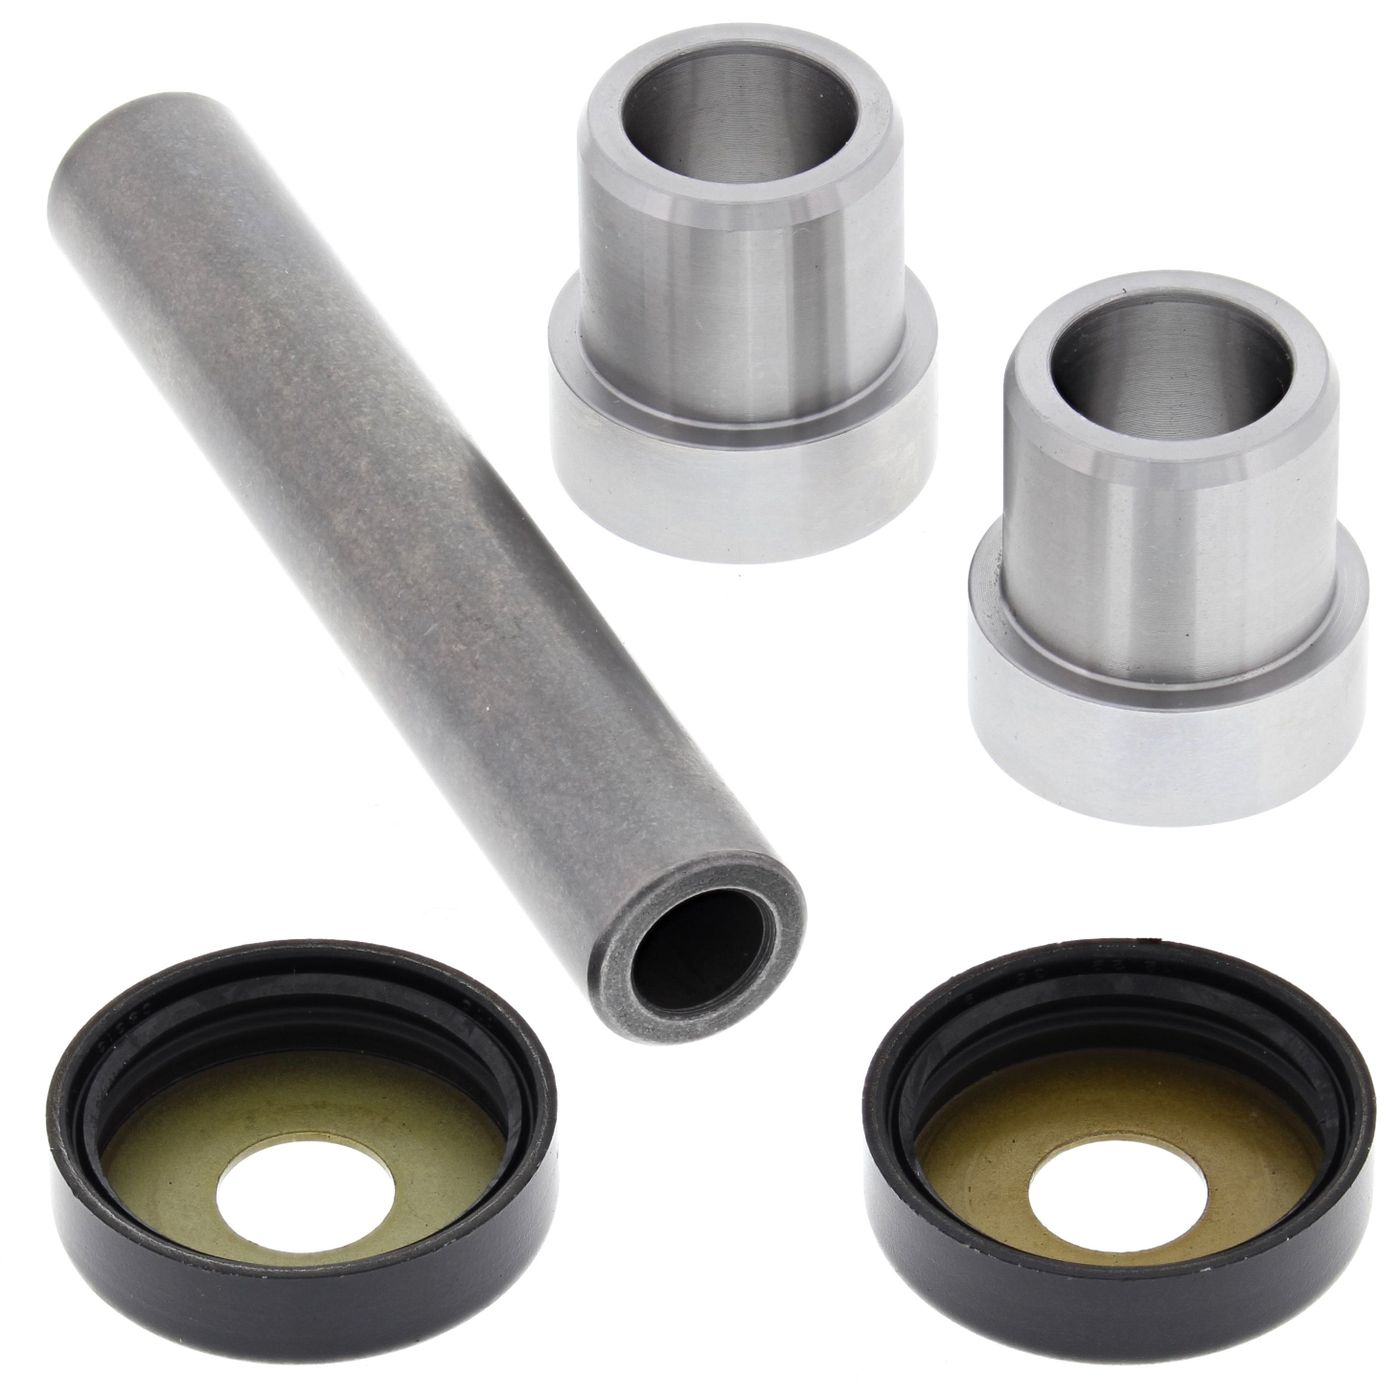 wrp stub axle repair kit - WRP421011 image